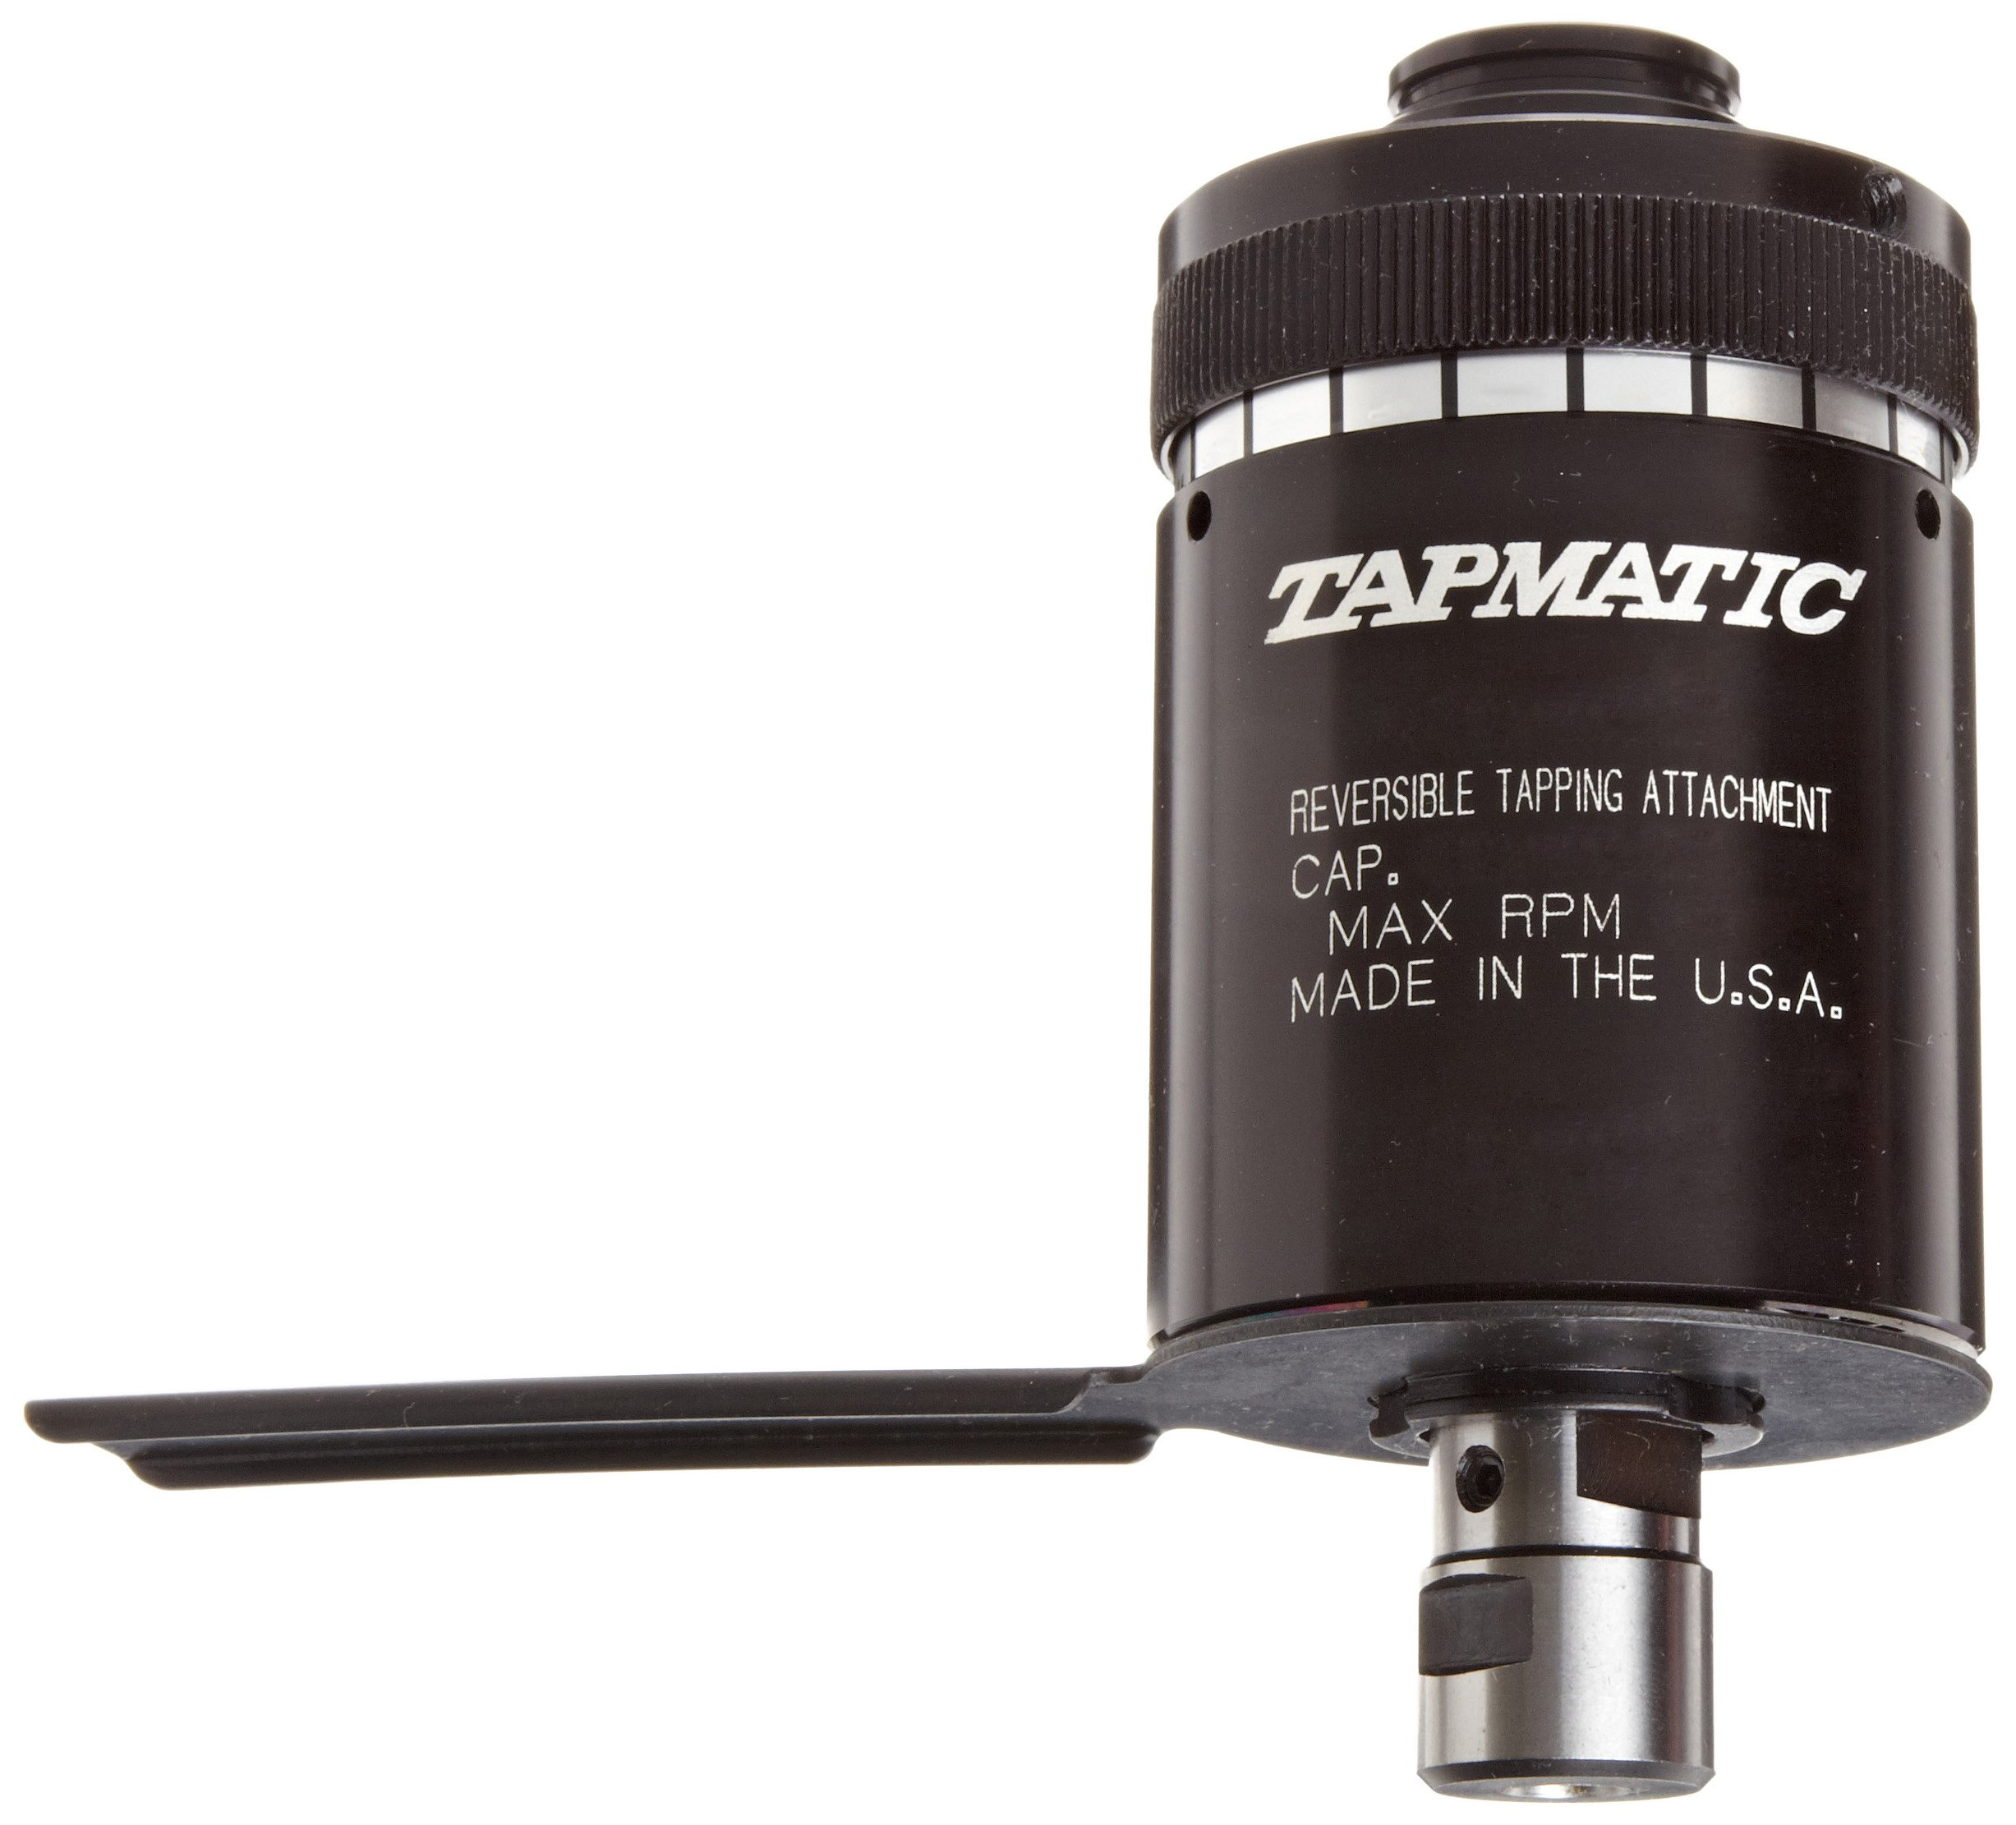 Tapmatic RX 30 Self-Reversing Tapping Head, 1/2''-20 Thread Mount, #0 - 1/4'' and M1.4-M7 Capacity